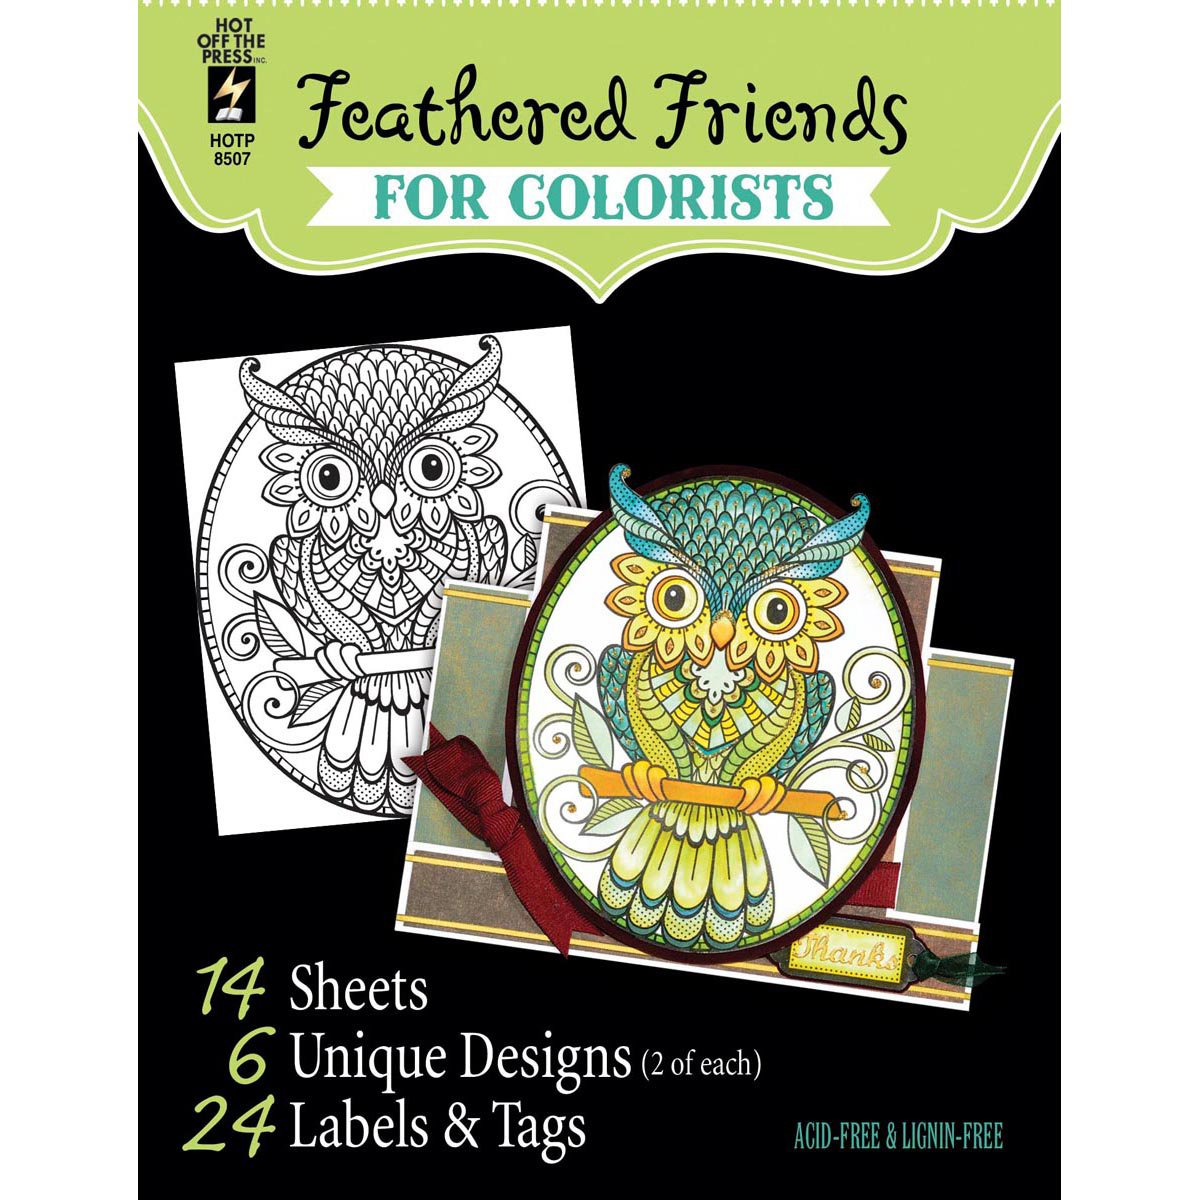 14 Black /& White Sheets of Heavy Card Hot Off the Press For Colorist Book Feathered Friends for Colorists